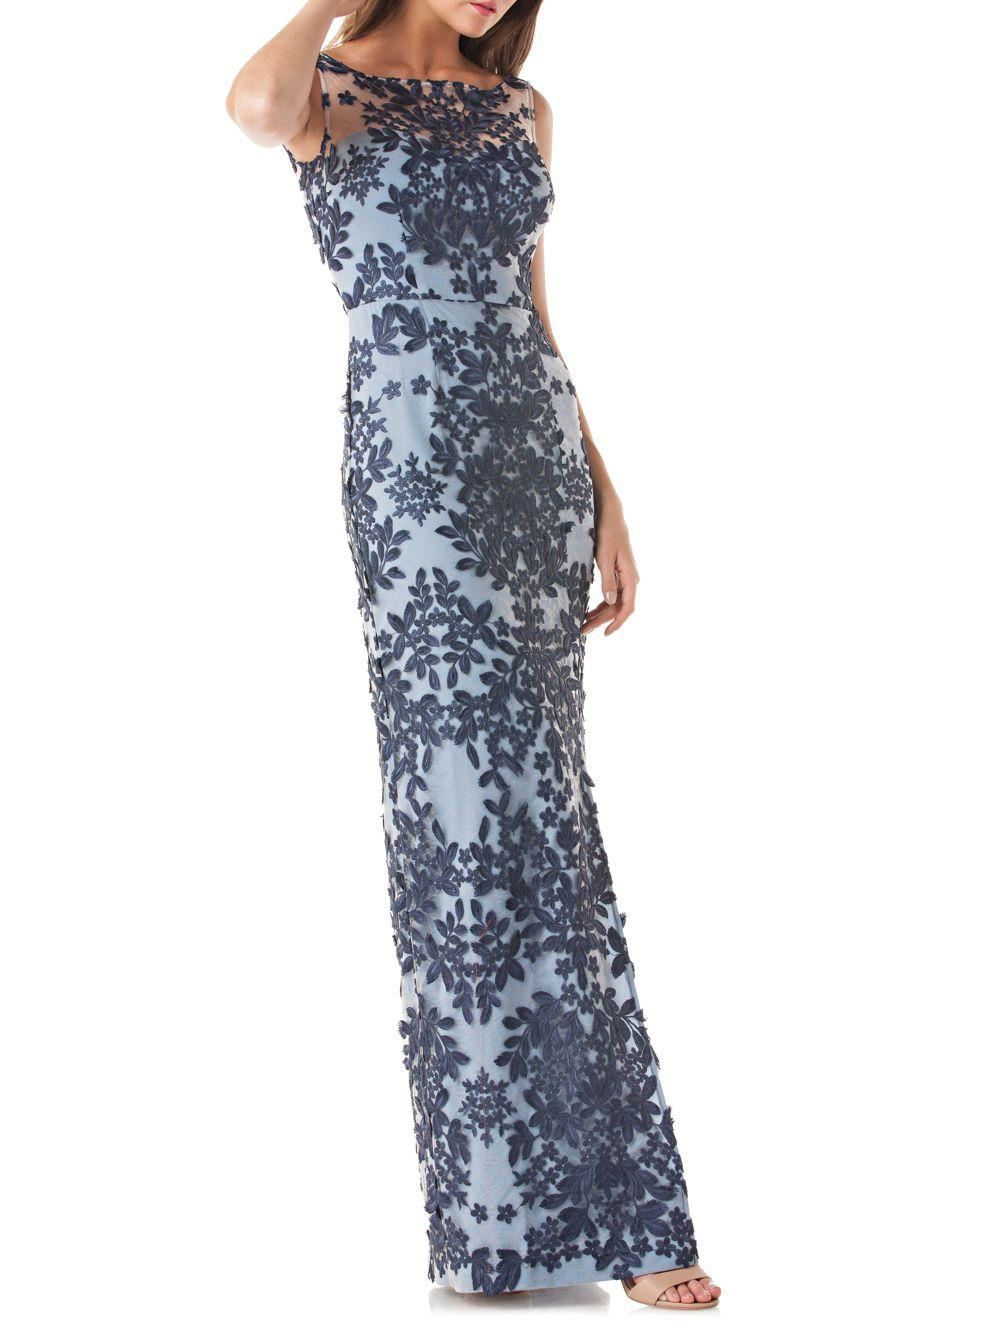 6705599d58 JS Collections 3d Embroidered Lace Gown in Blue - Save 70% - Lyst